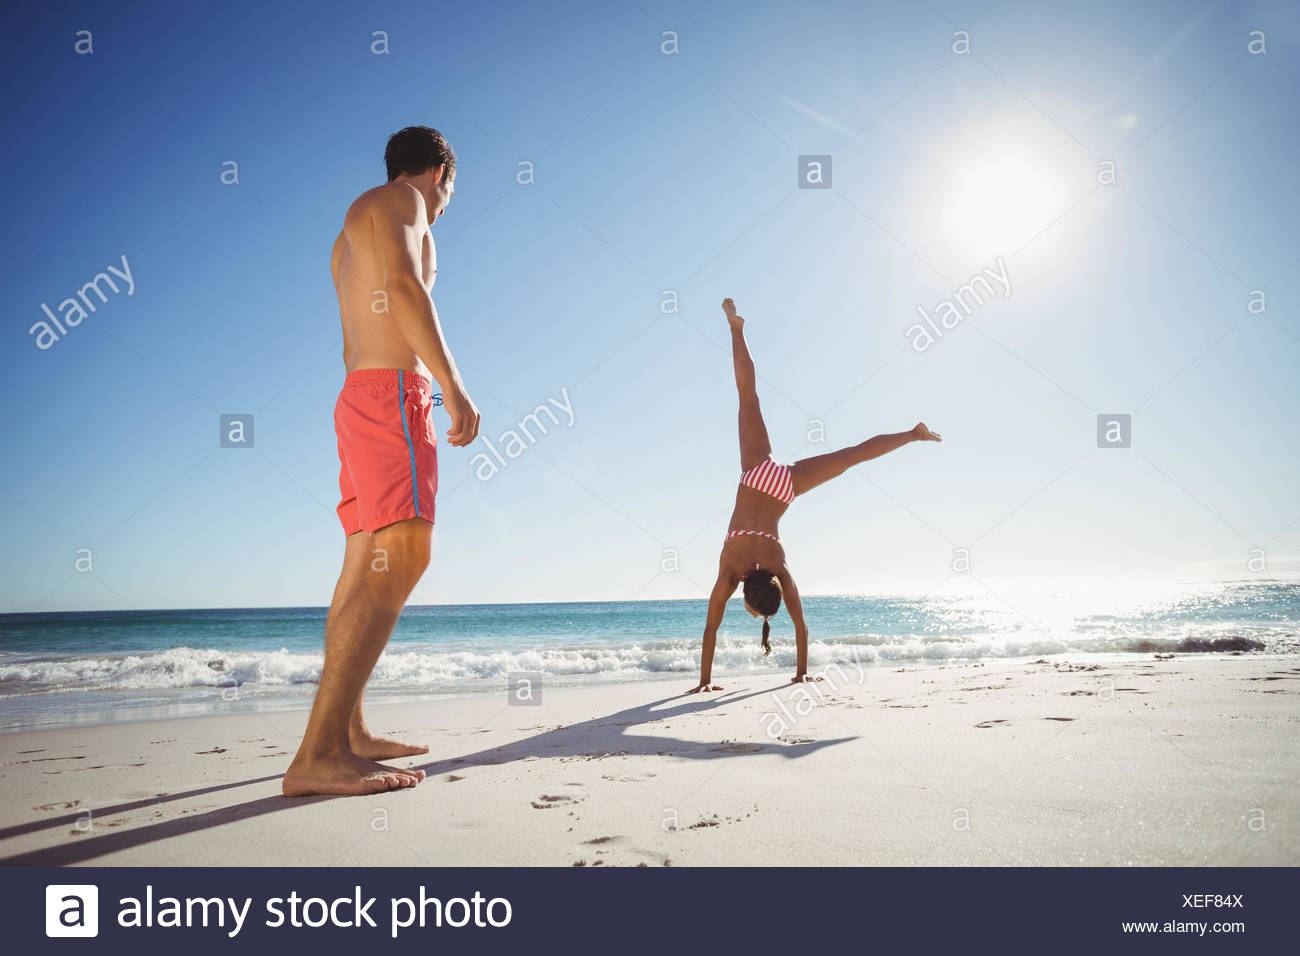 Woman performing somersault on beach - Stock Image